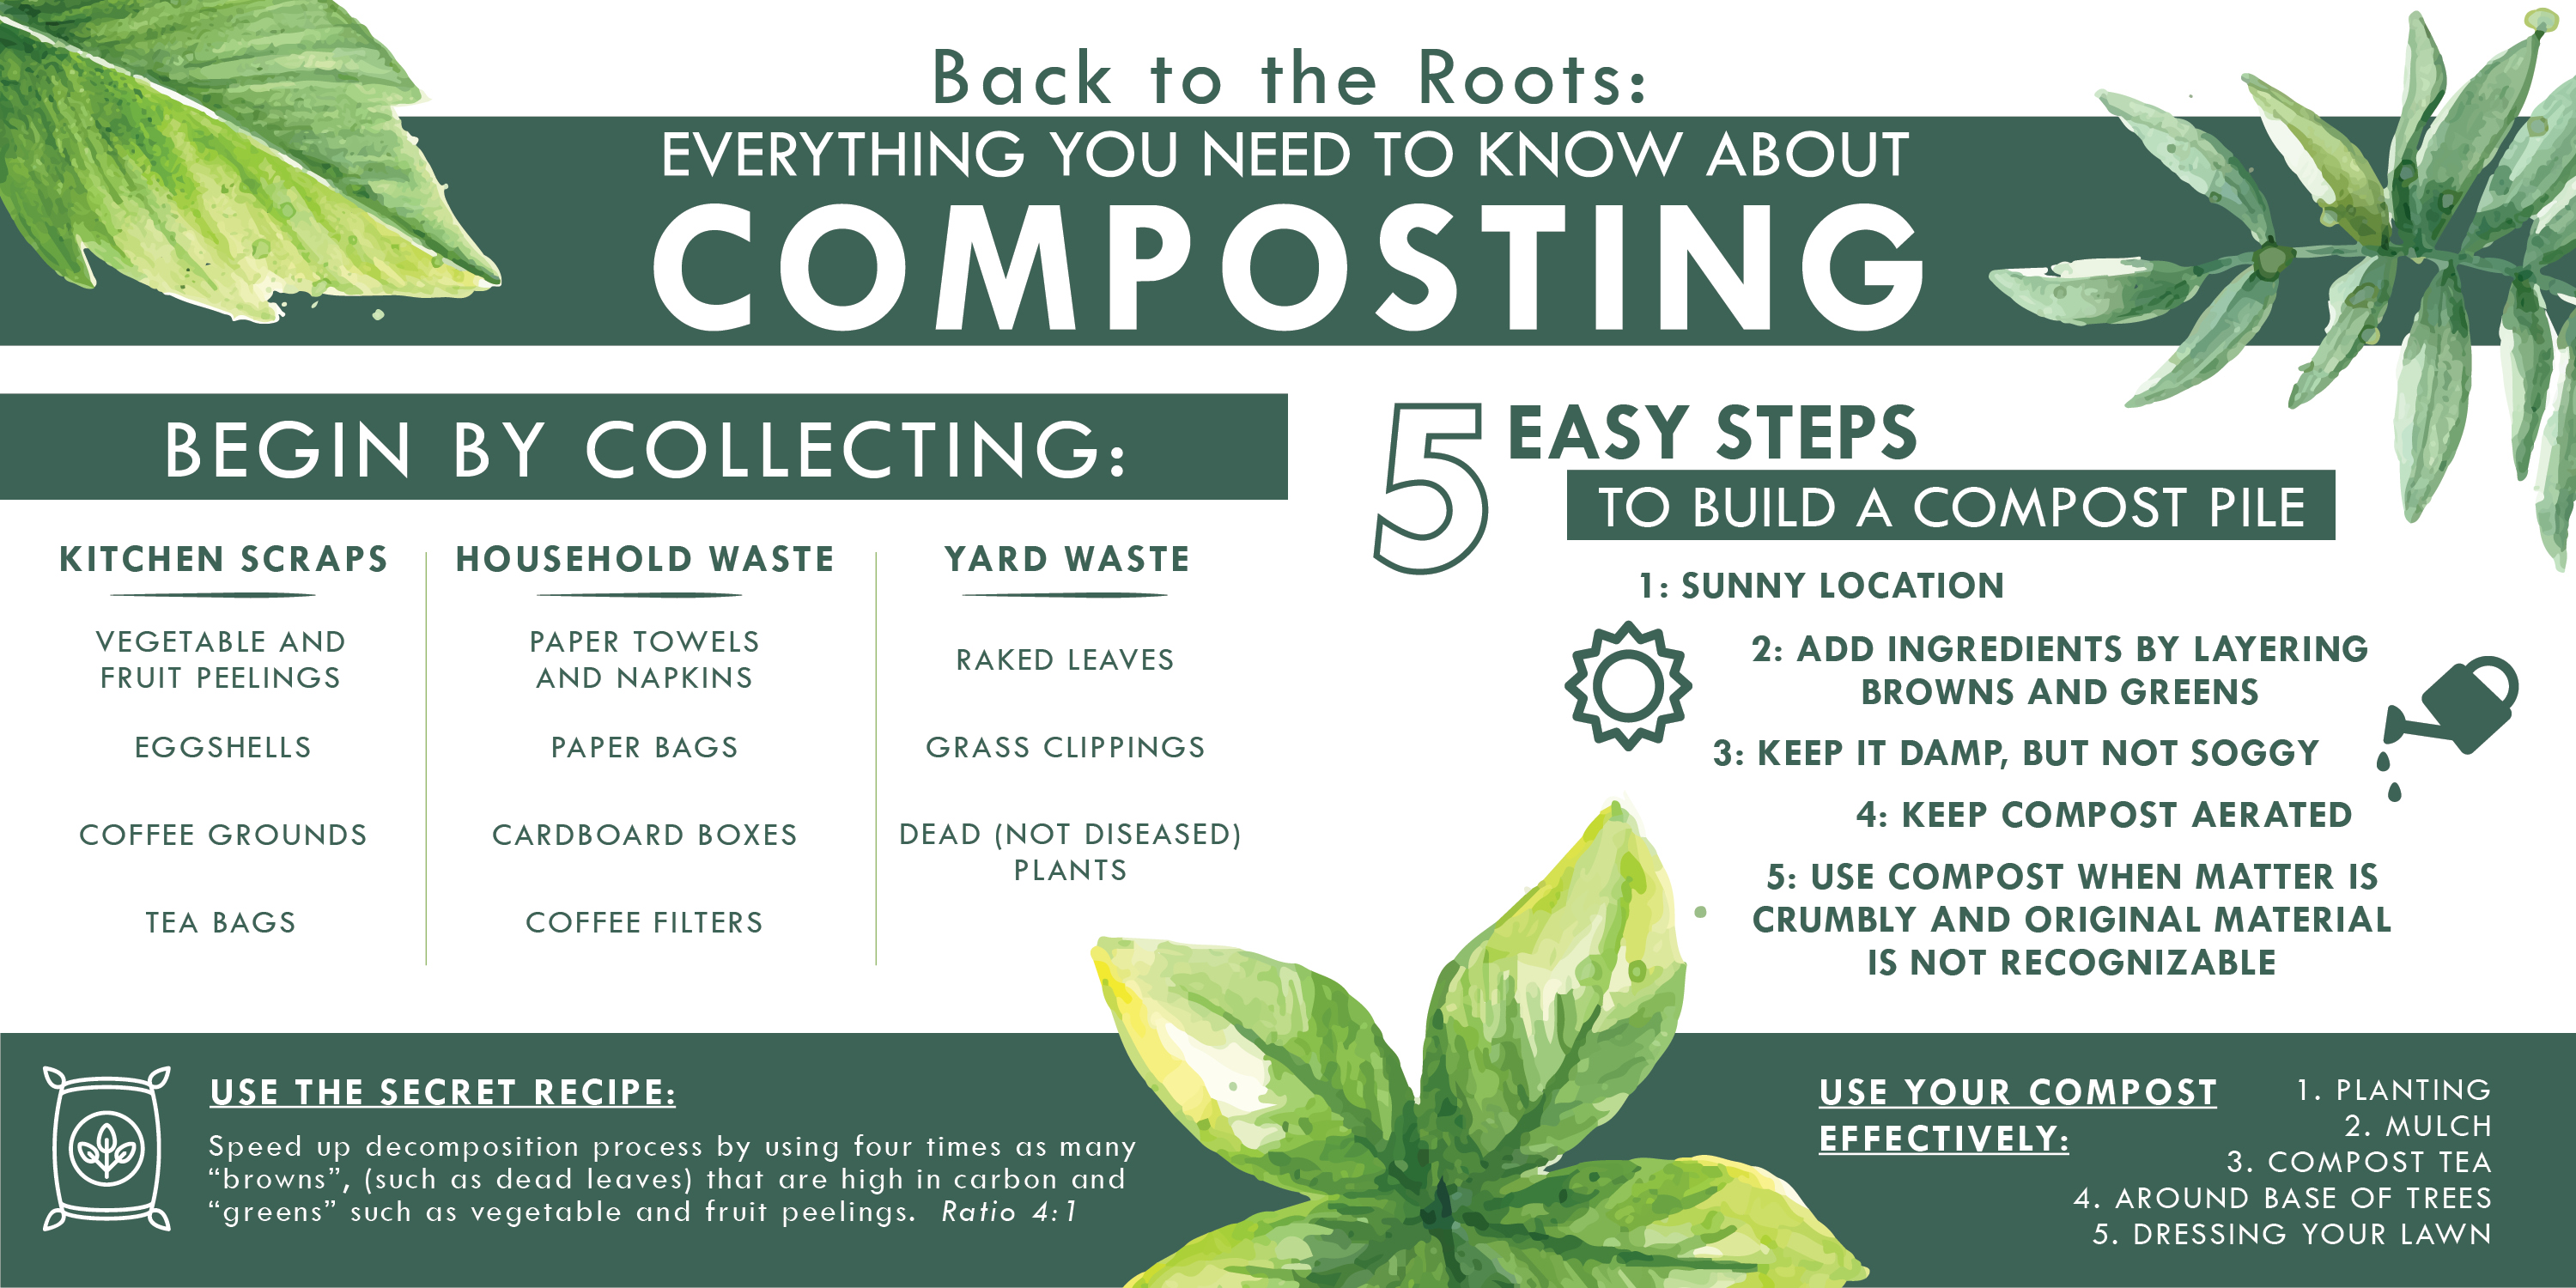 Back to the Roots: Everything You Need To Know About Composting infographic